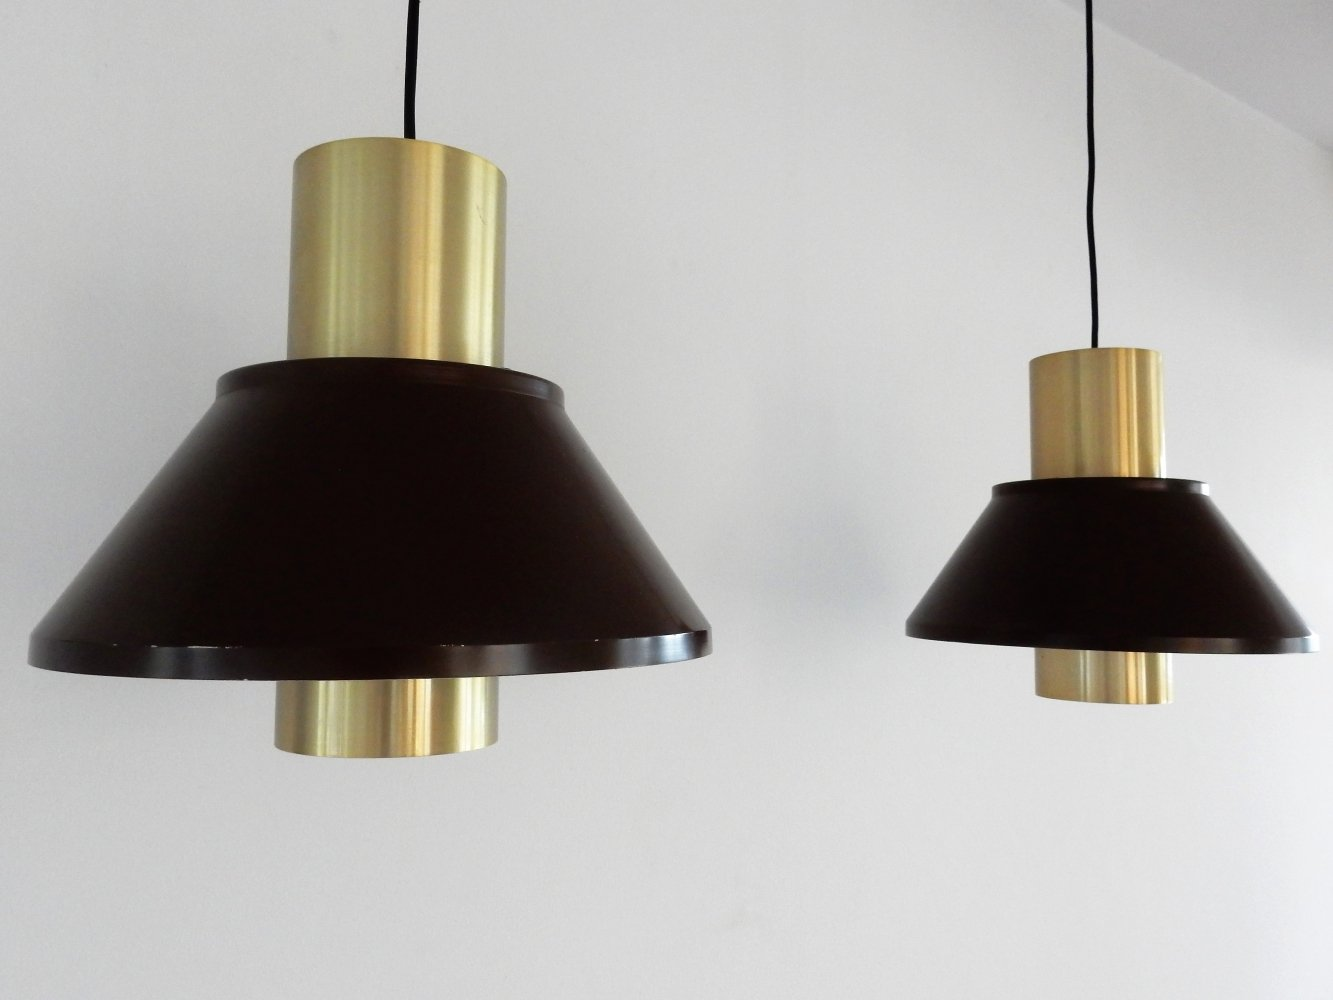 Set of 2 Life pendant lamps by Jo Hammerborg for Fog & Mørup, Denmark 1970